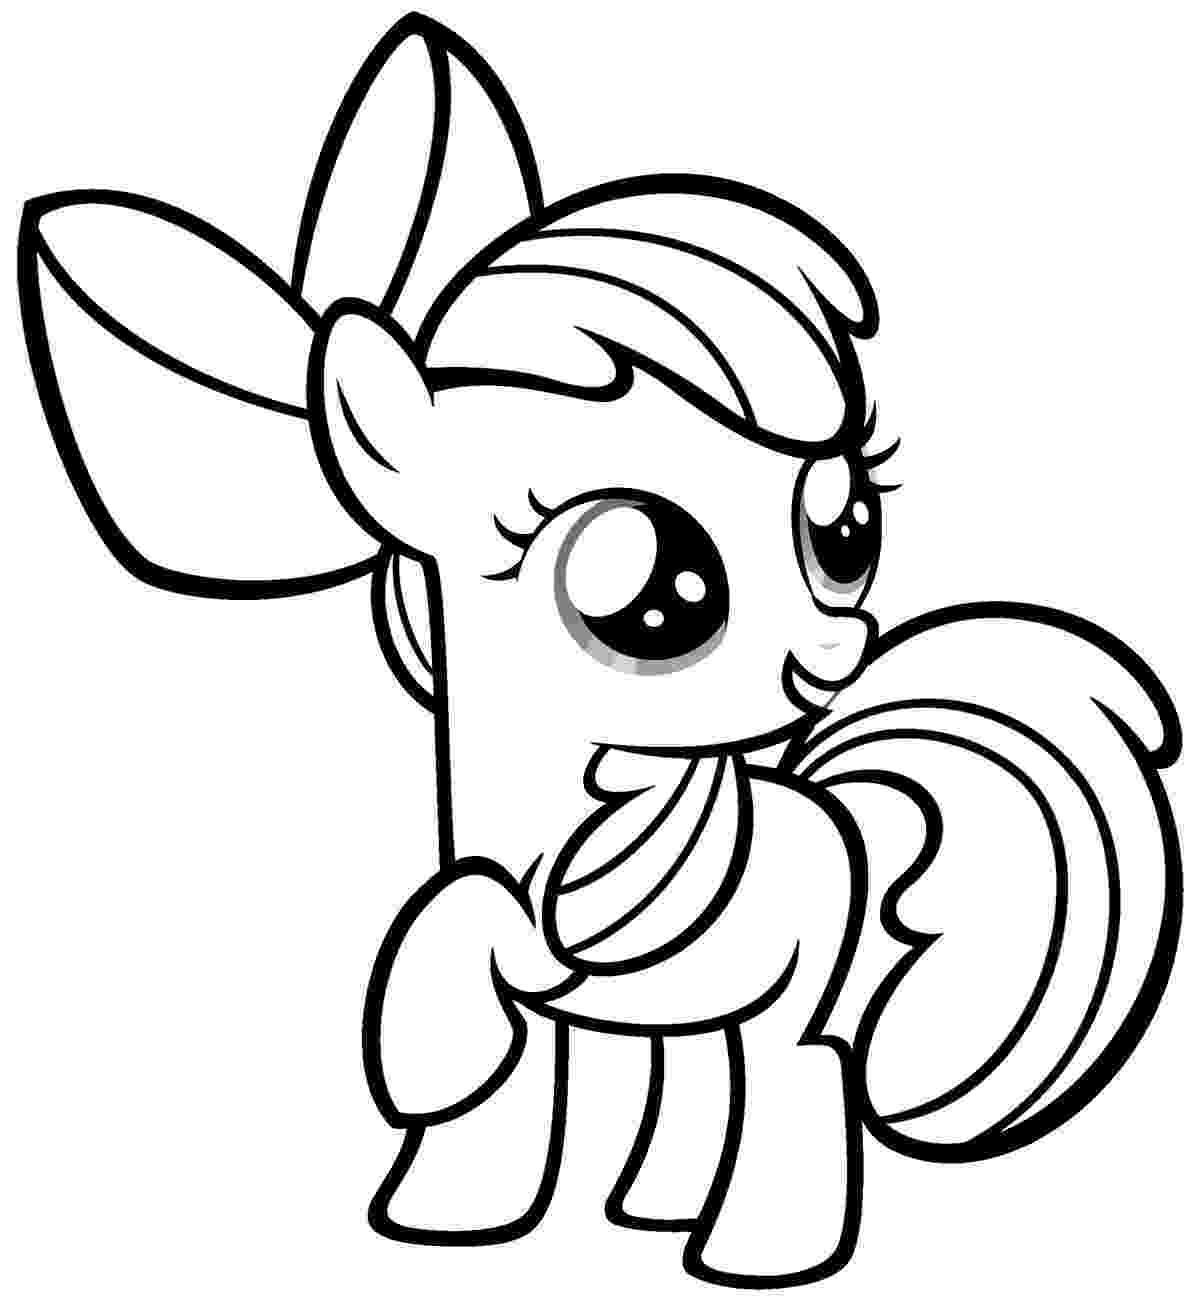 my little pony coloring pages friendship is magic my little pony friendship is magic logo coloring page coloring pages friendship is little pony my magic